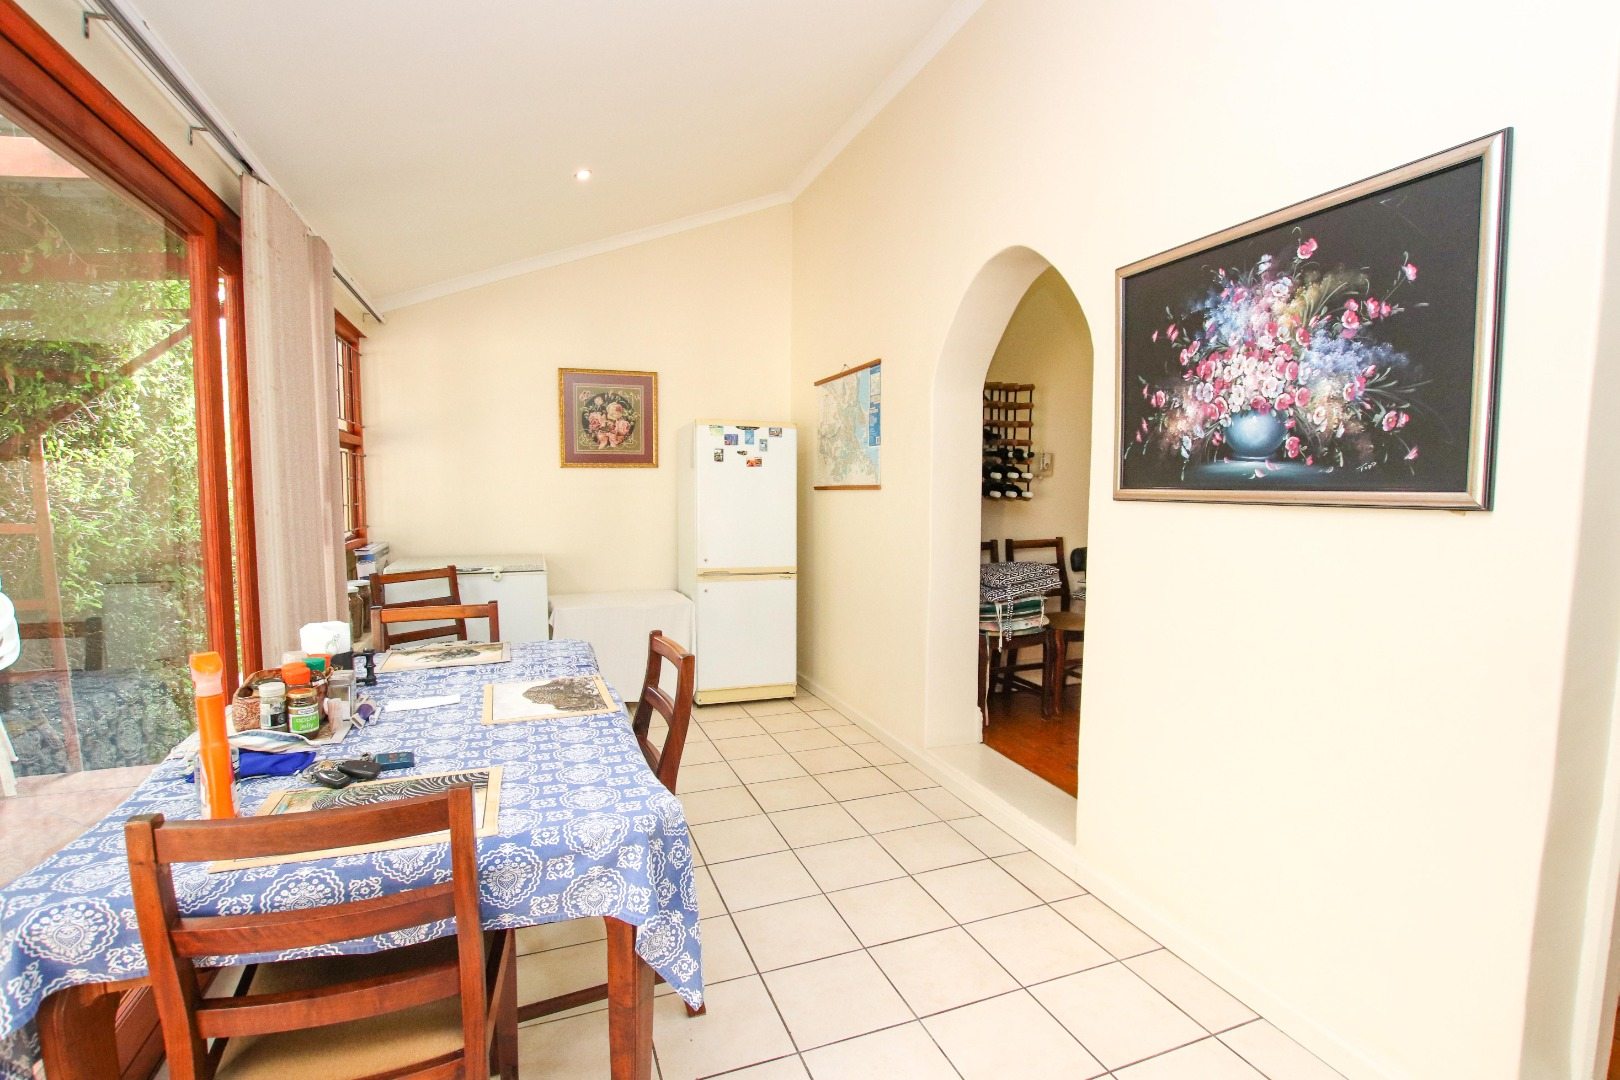 3 Bedroom House For Sale in Richmond Hill